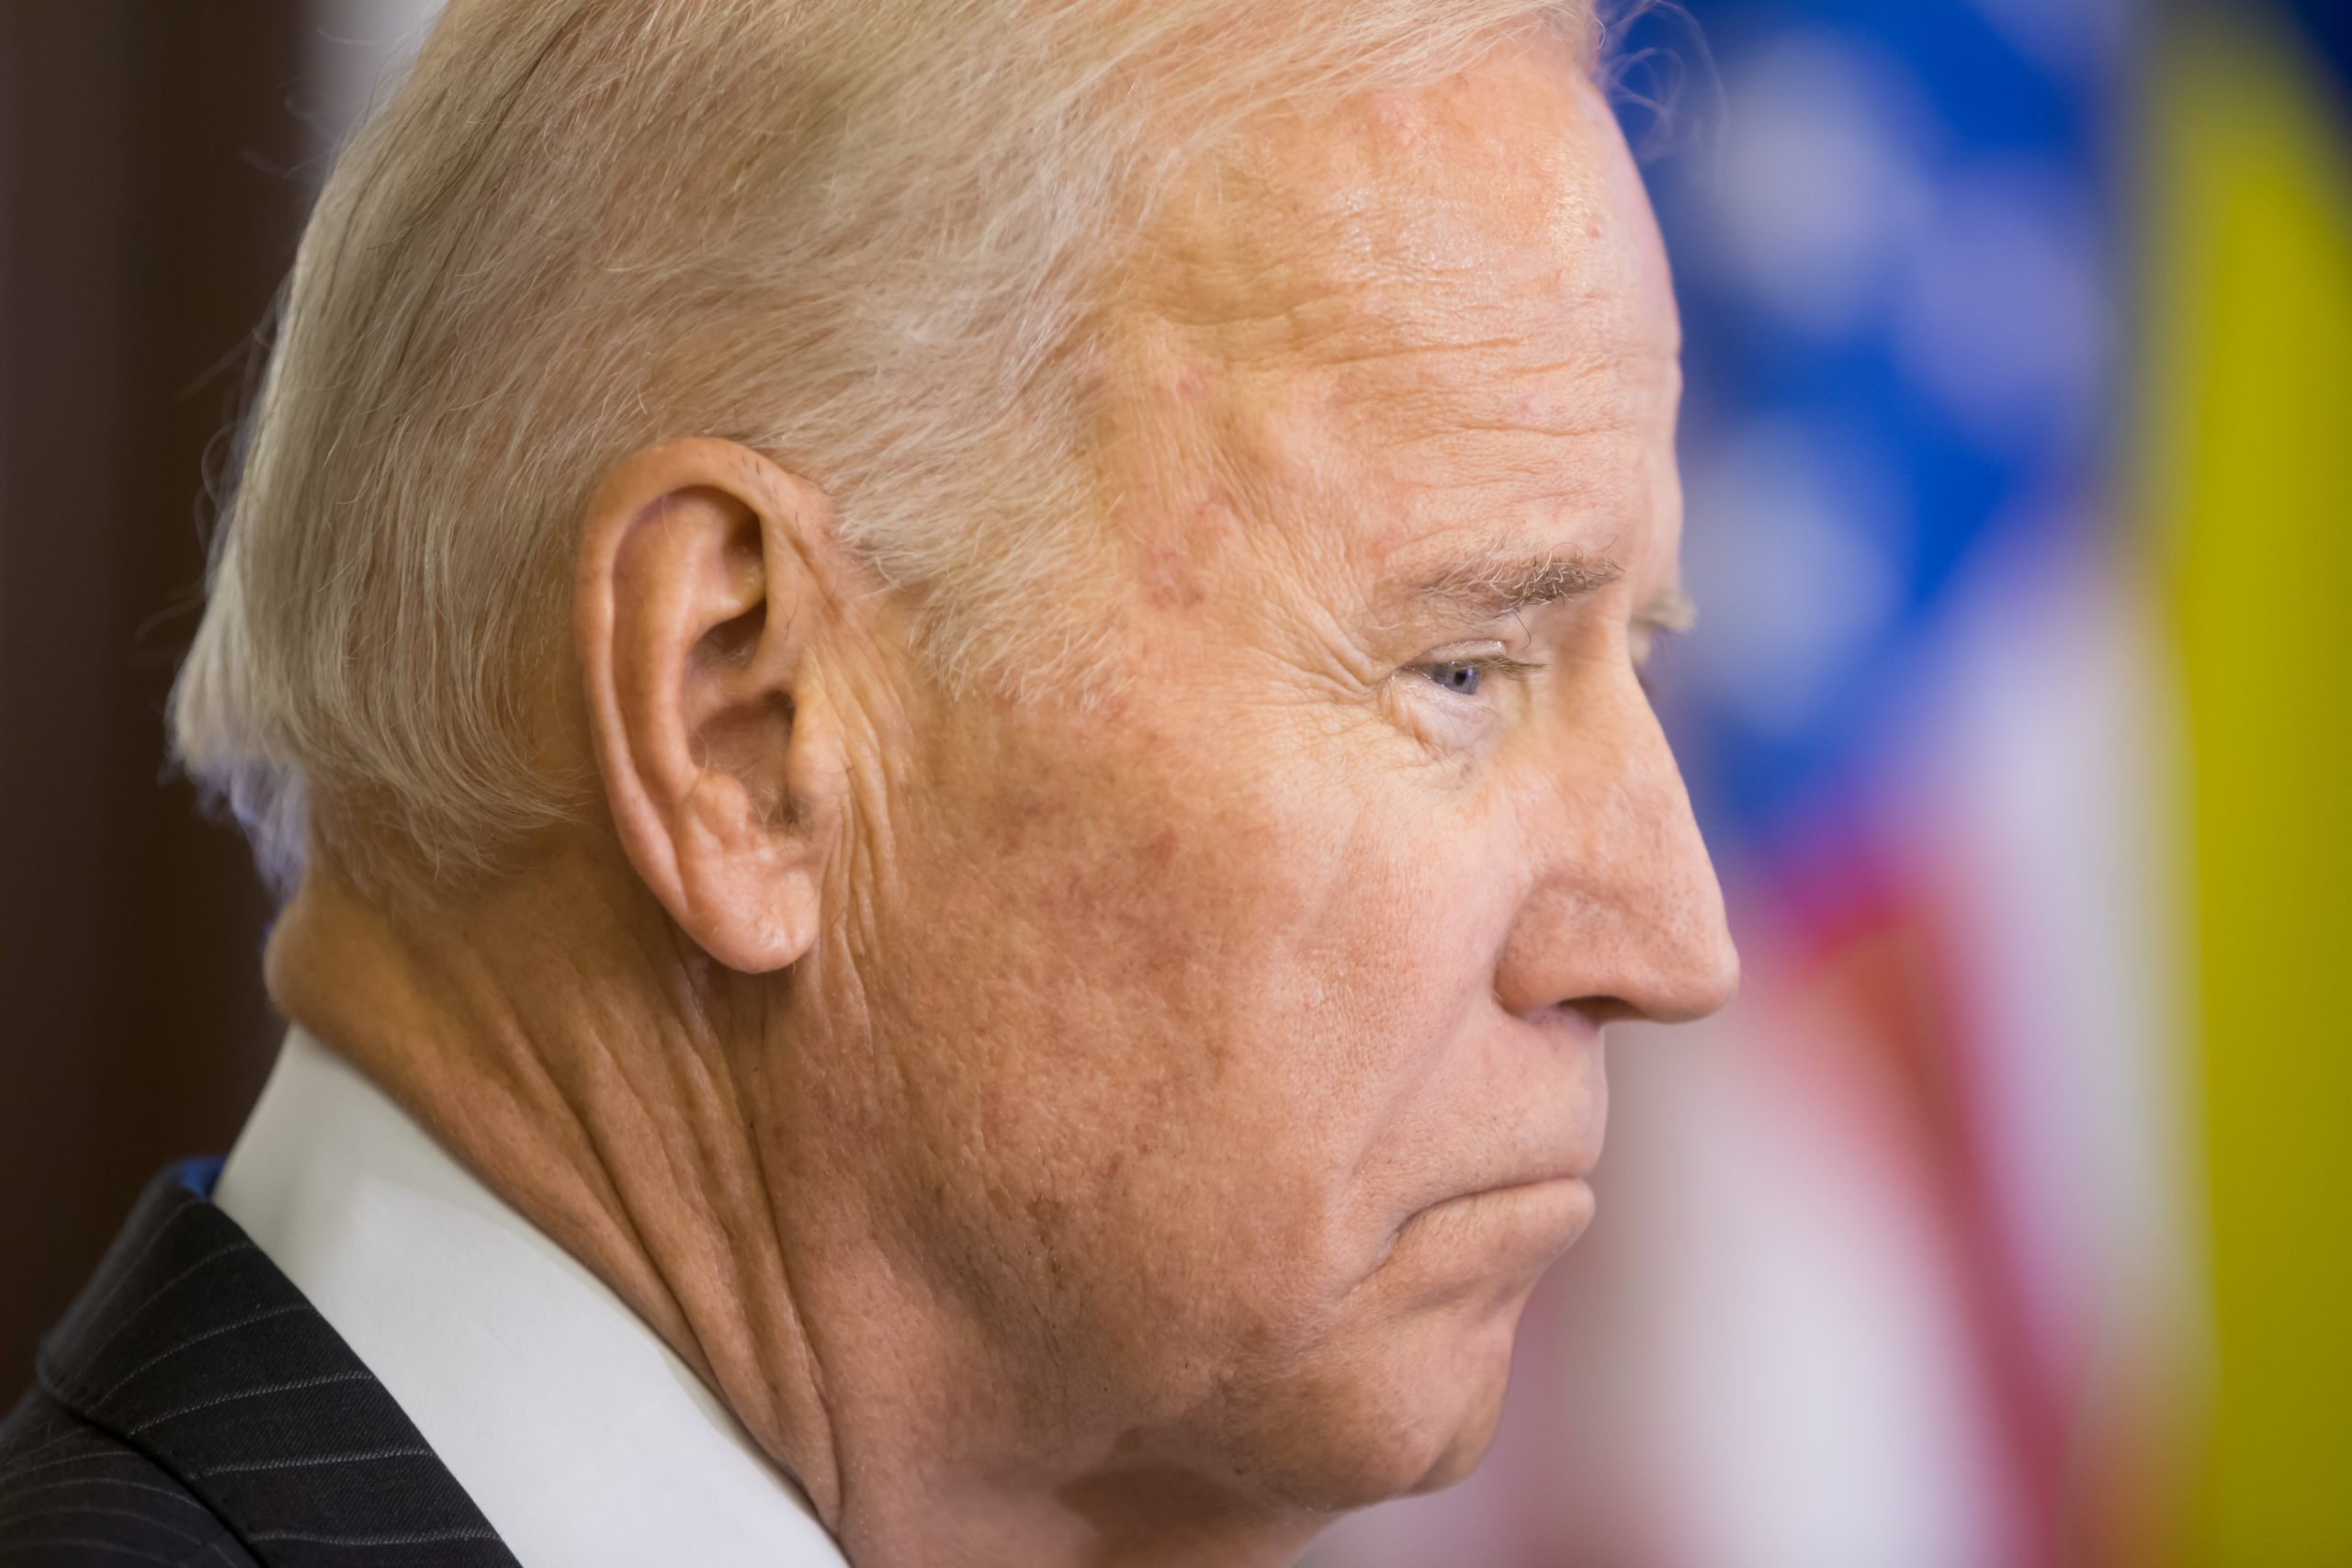 Joe Biden CAUGHT Without A Mask On After Telling Americans 'Do Your Part,' 'Wear a Mask'